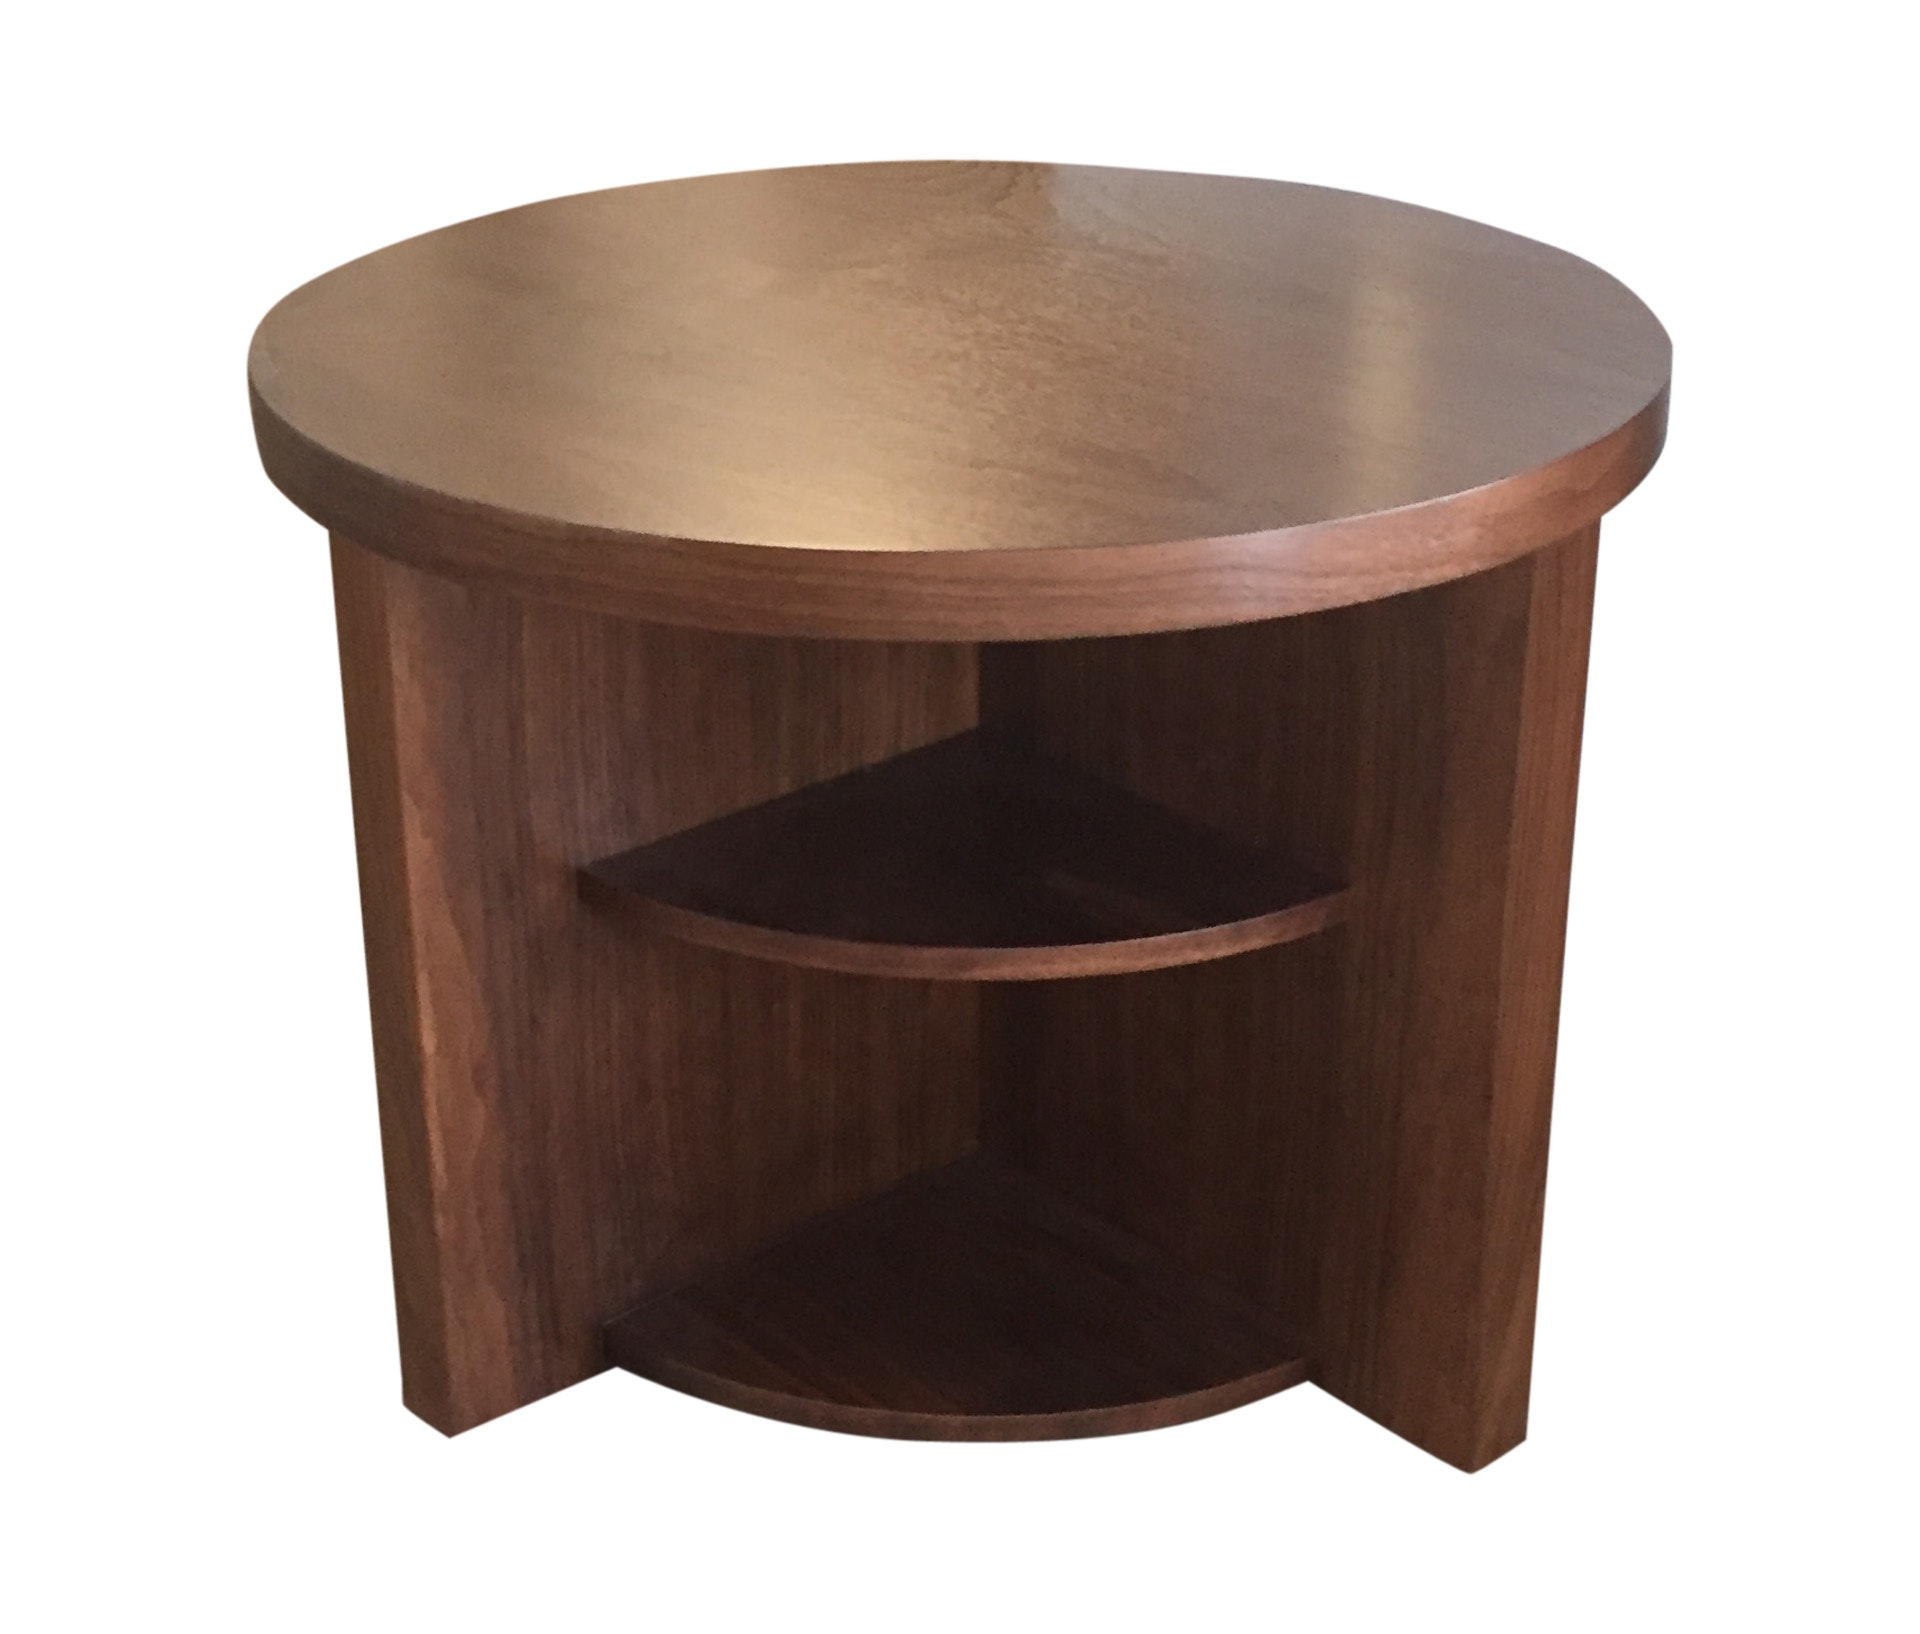 geometric side table the fantastic beautiful rustic walnut end round contemporary traditional mid century new day woodwork furniture tables lacquer natural material modern dering